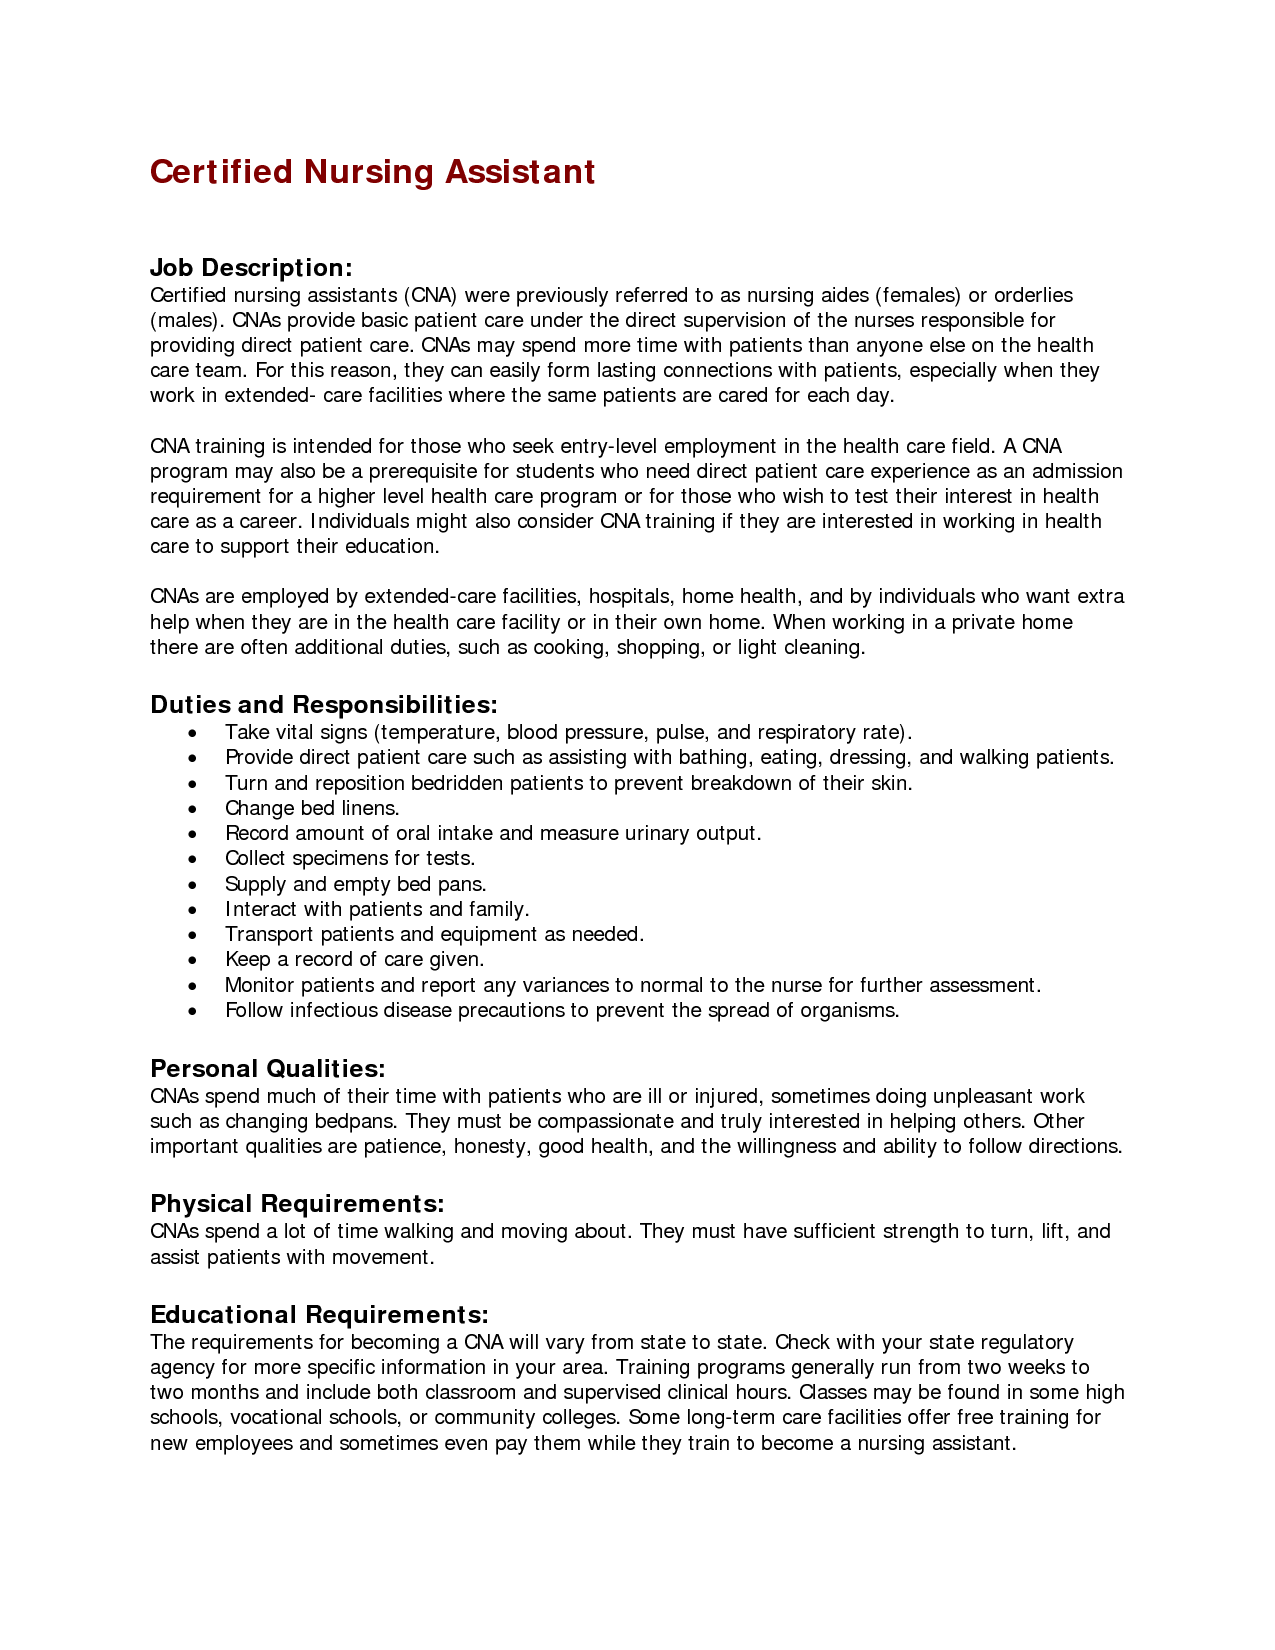 responsibilities nursing assistant resume job description cna duties and responsibilities